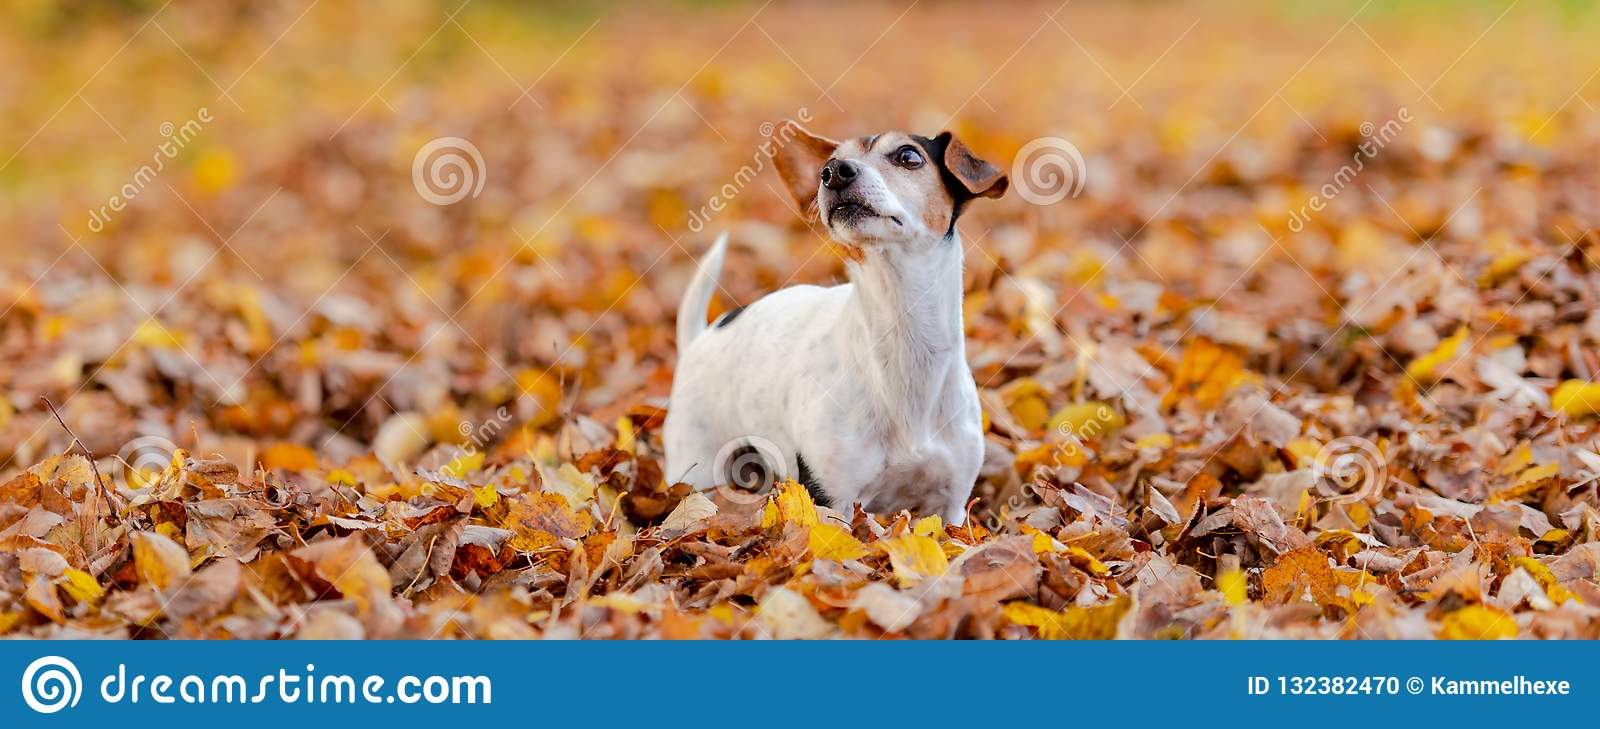 Beatifung small dog in autumn leaves